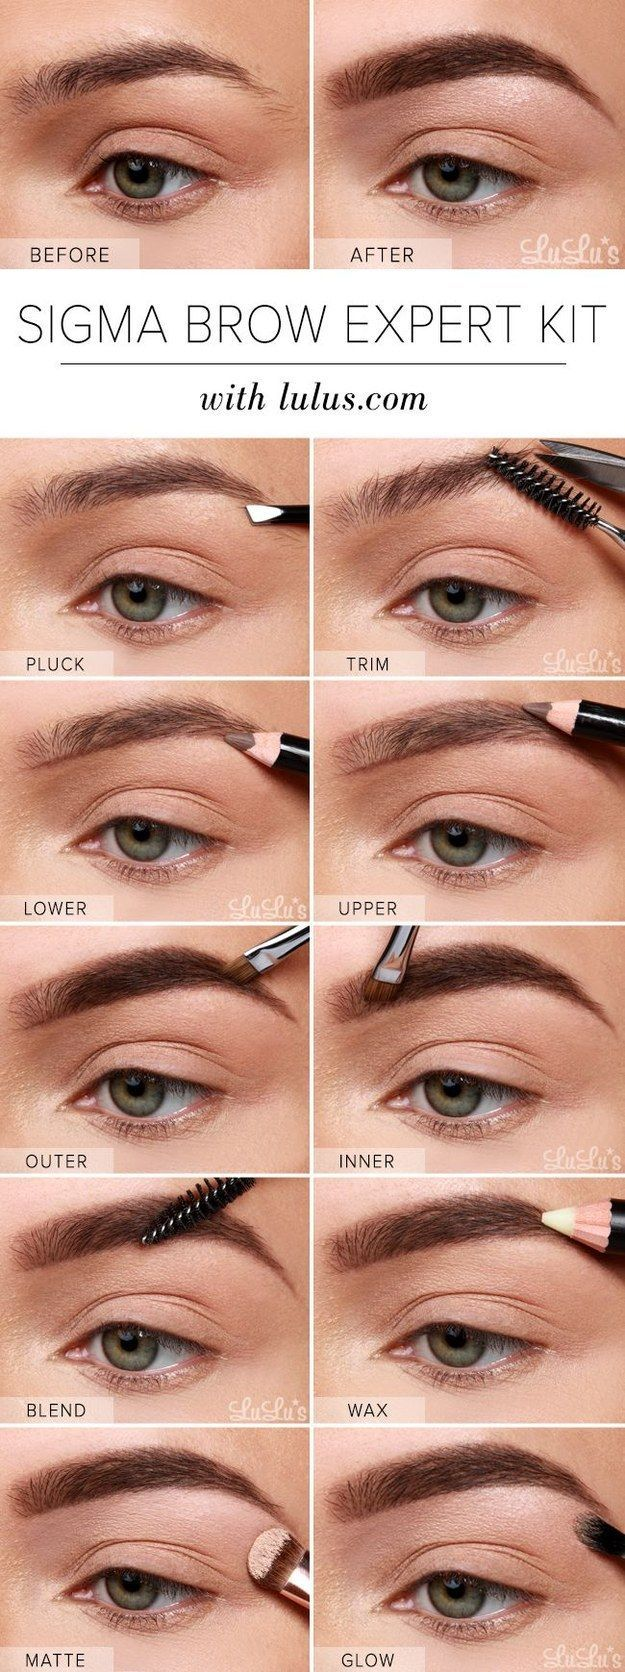 Get on that Cara Delevingne eyebrow grind. | 17 Insanely Beautiful Makeup Looks That Aren't Just Another Smokey Eye